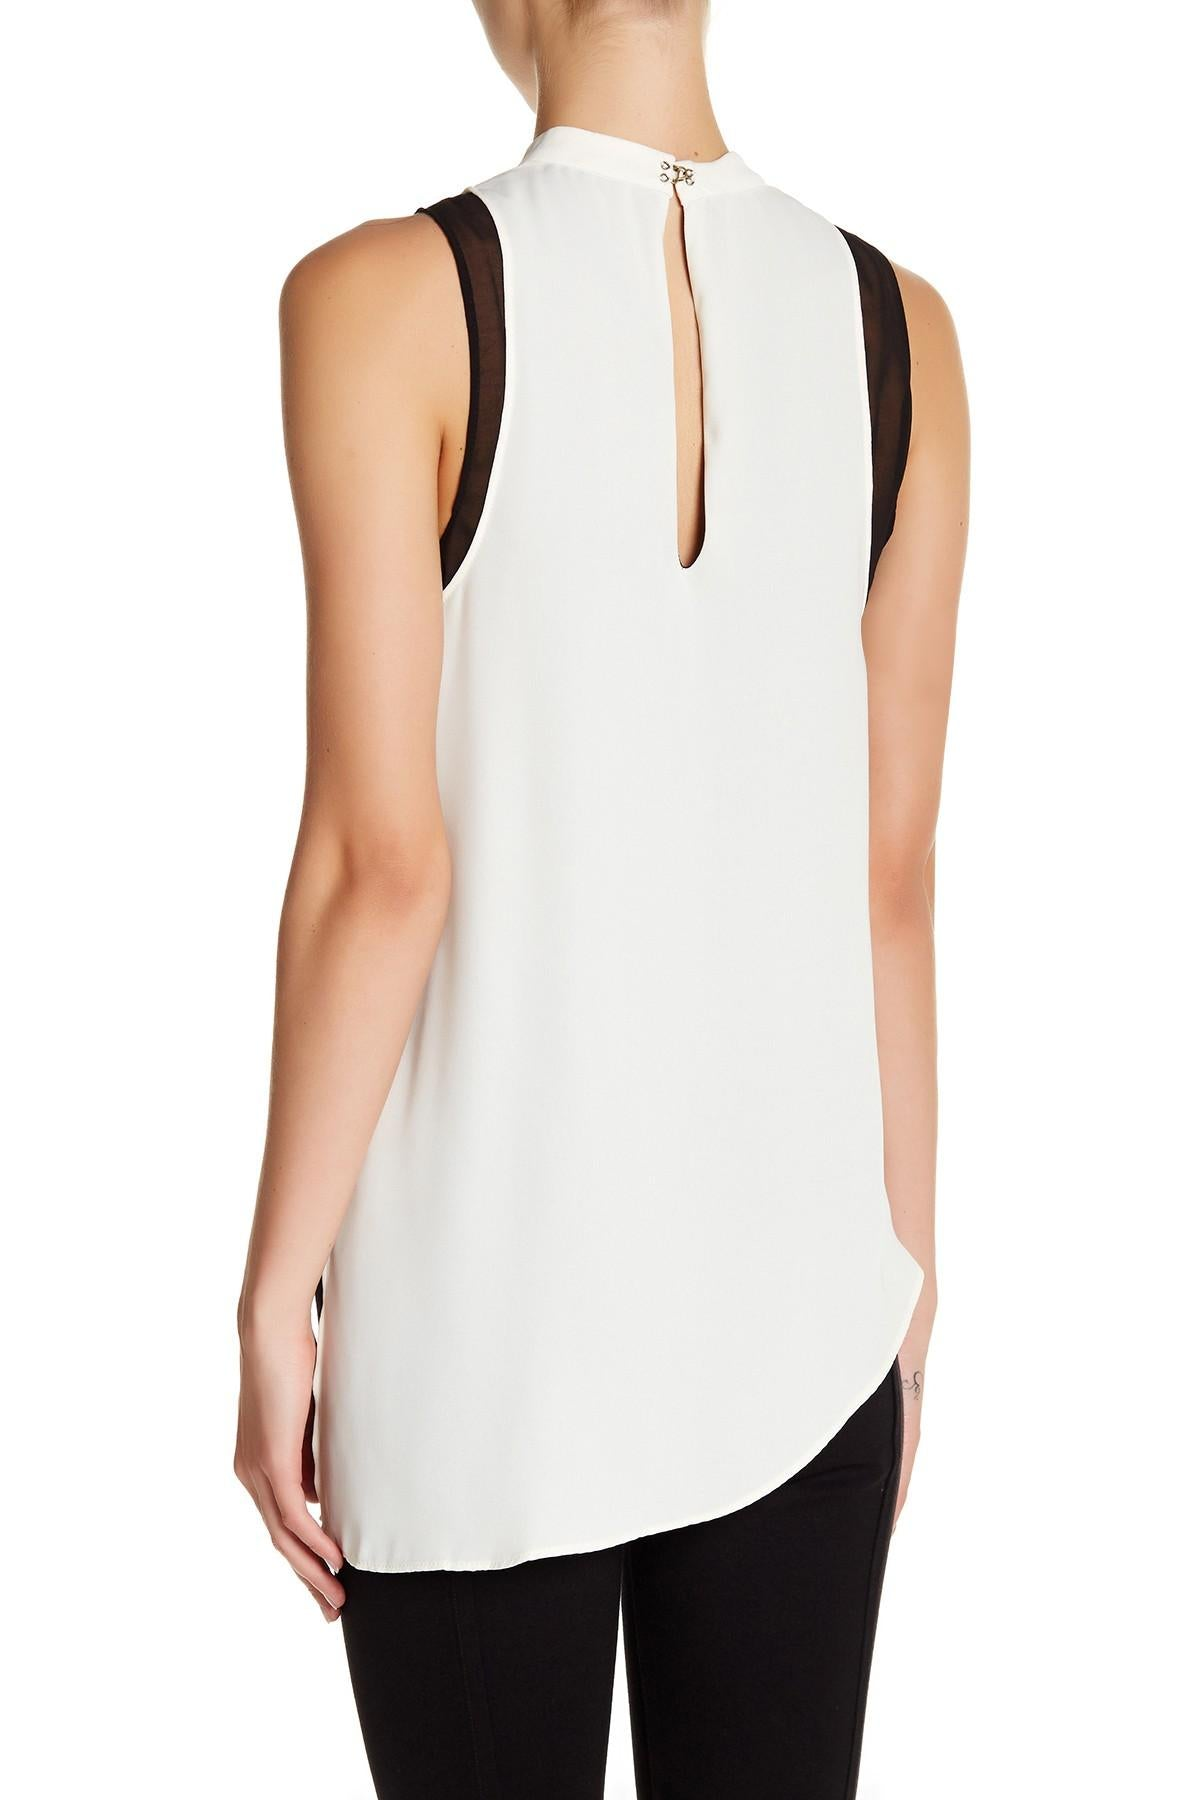 RACHEL Rachel Roy Asymmetrical Colorblocked Top Canvas M